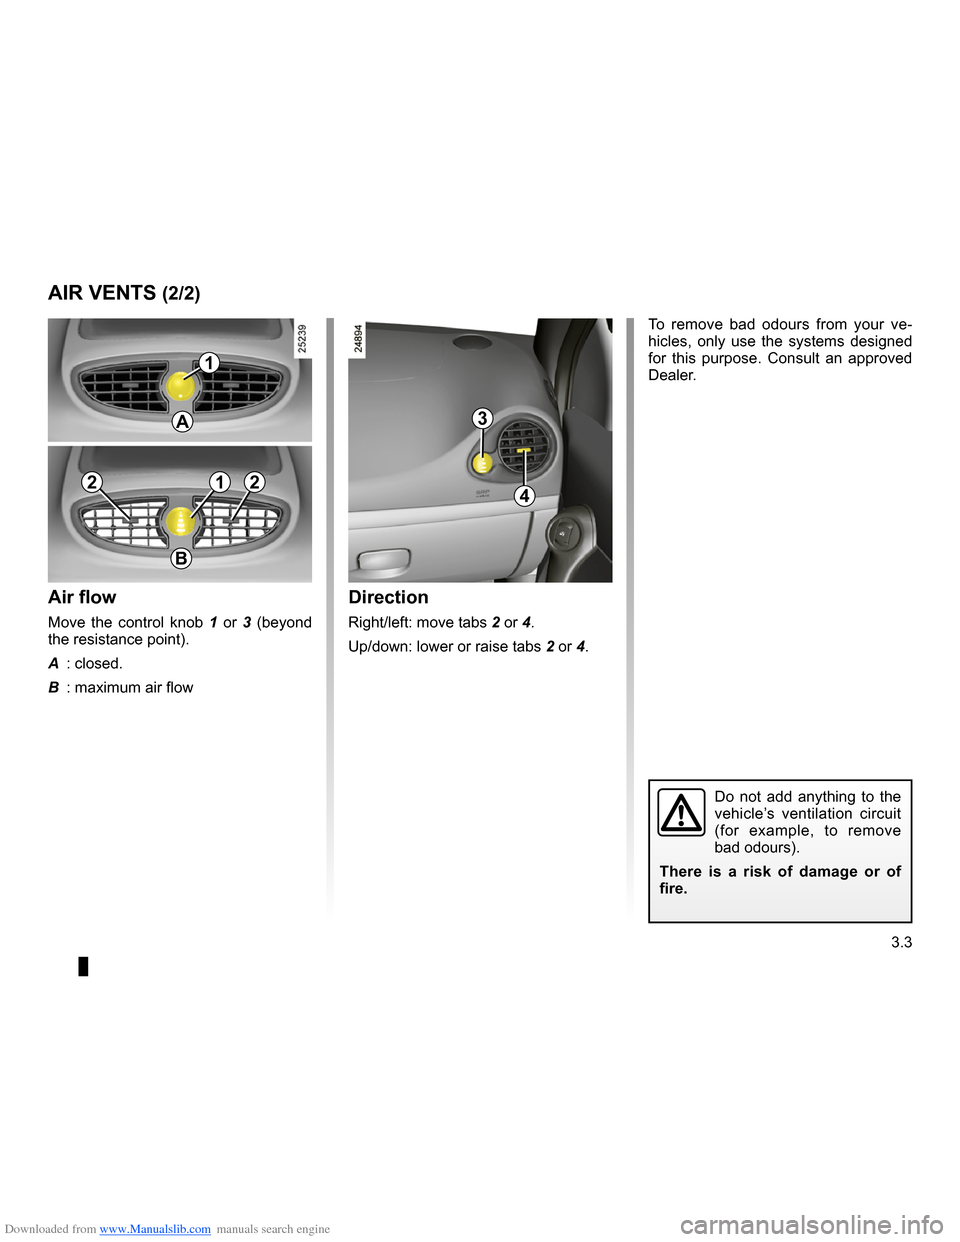 RENAULT CLIO 2009 X85 / 3.G Owners Manual, Page 135